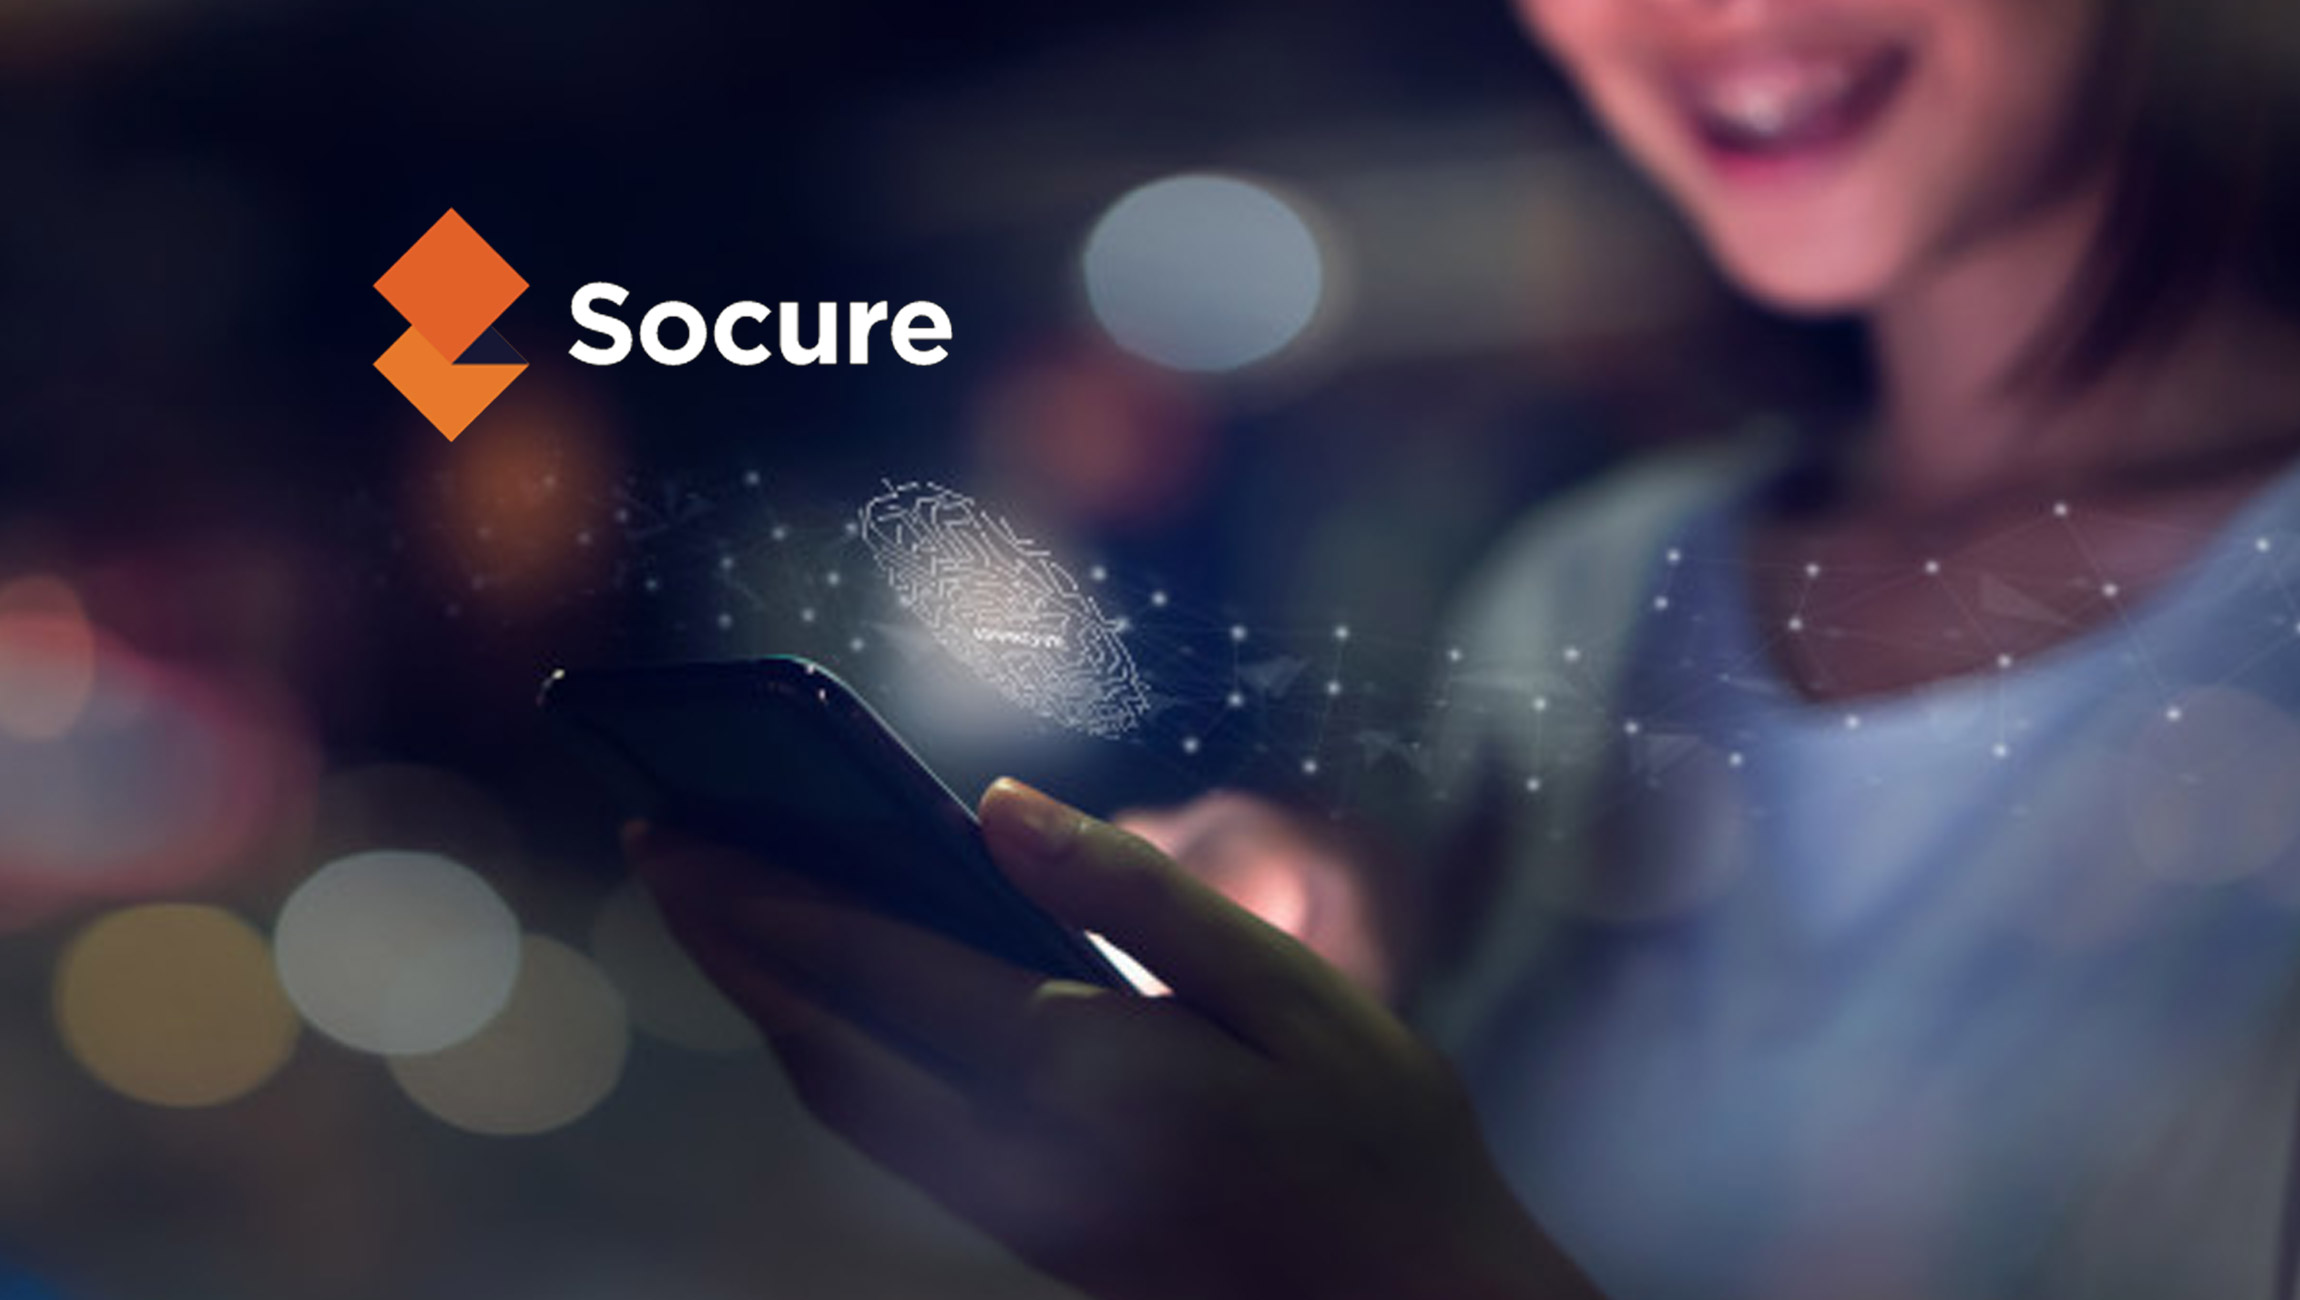 Socure to Provide DraftKings With Additional Compliance Tools 15